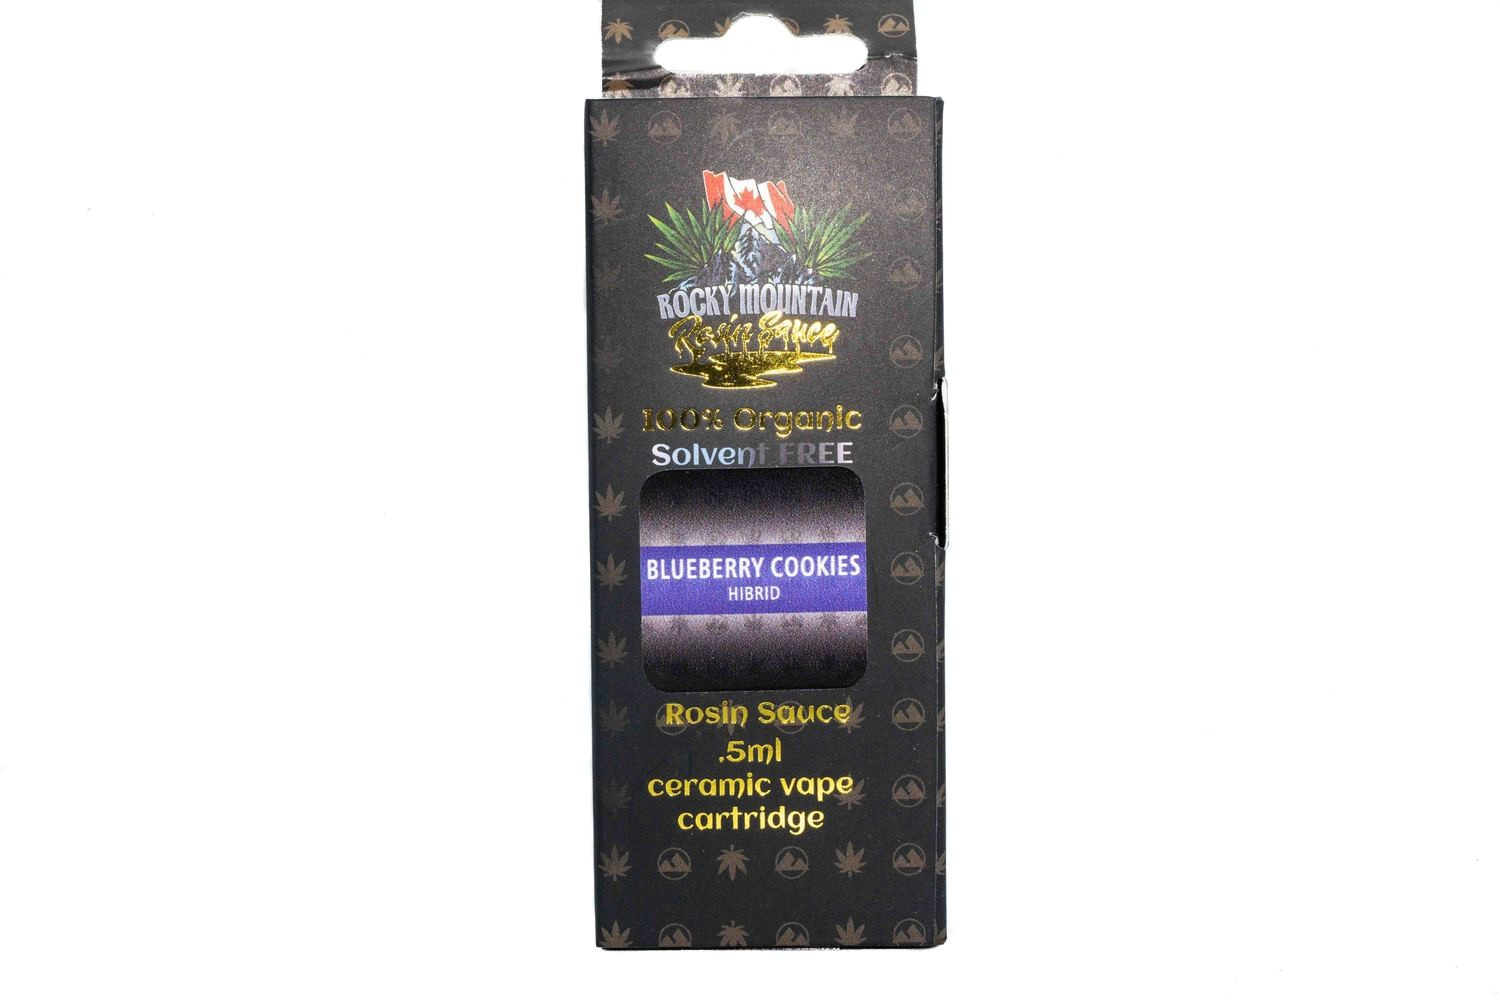 Blueberry Cookies (Hybrid) (Full Spectrum) Rosin Sauce Replacement Cartridge by Rocky Mountain